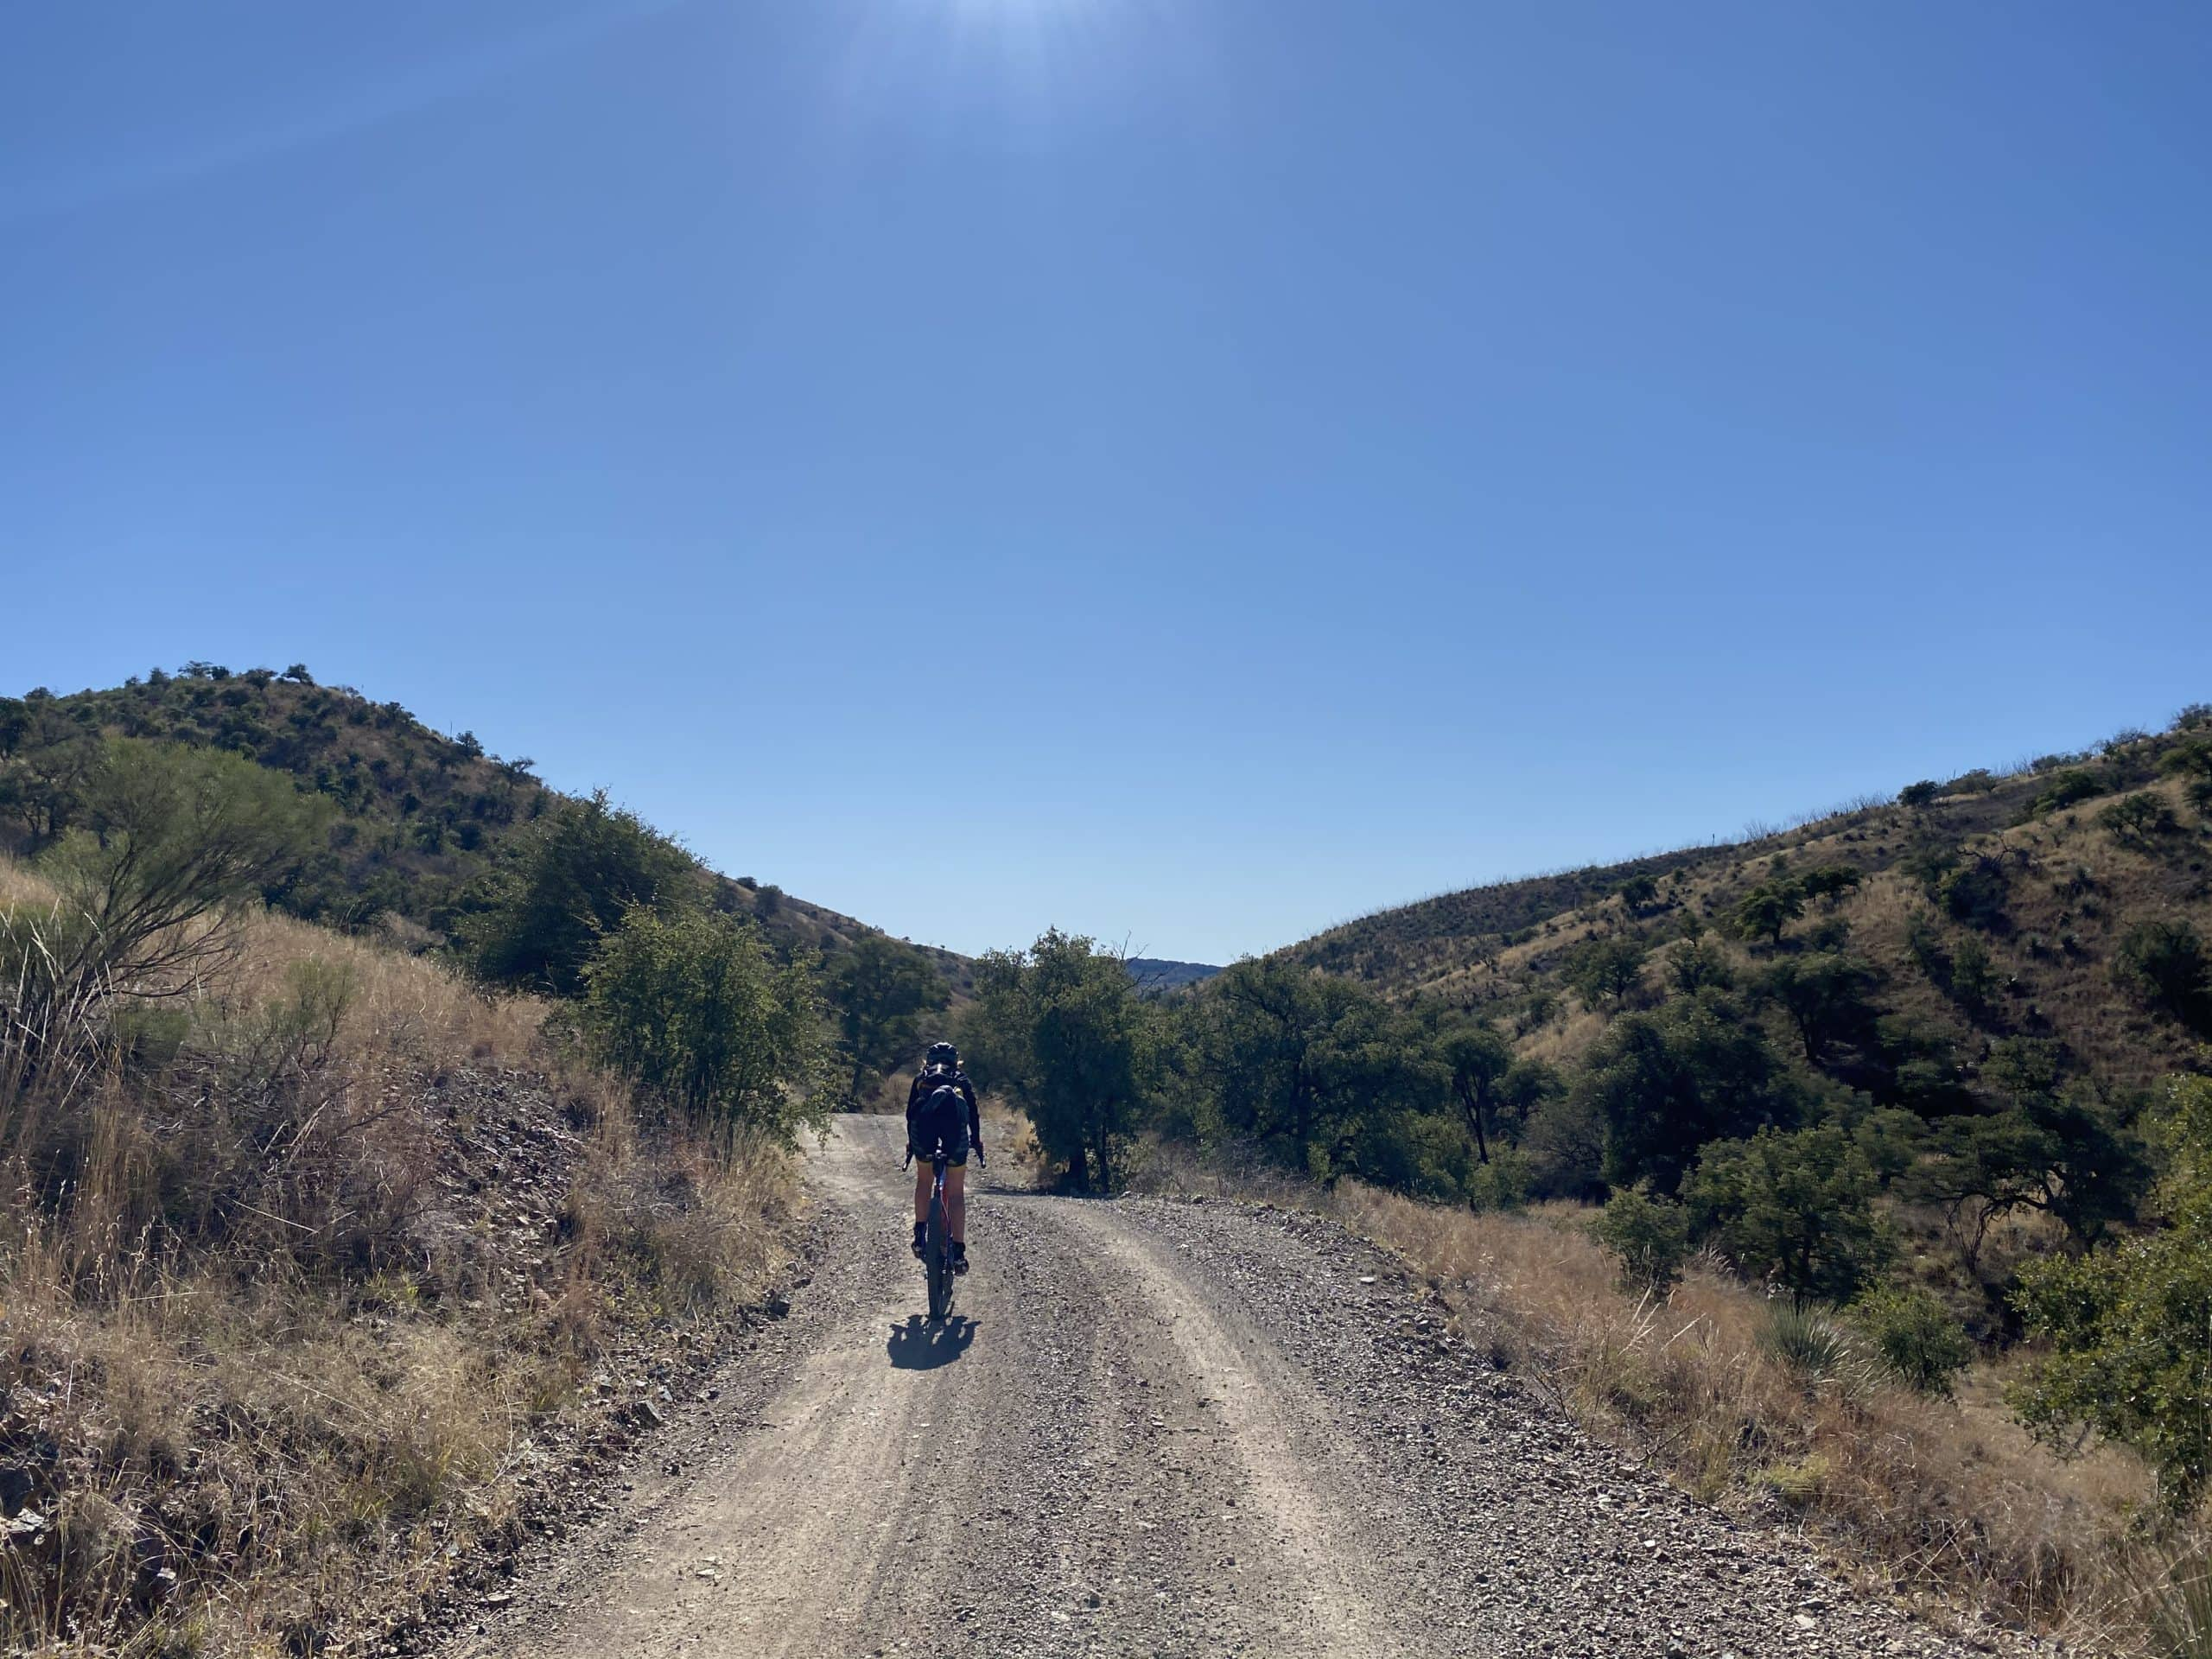 Woman gravel cyclist riding along Warsaw creek in the Coronado National Forest.